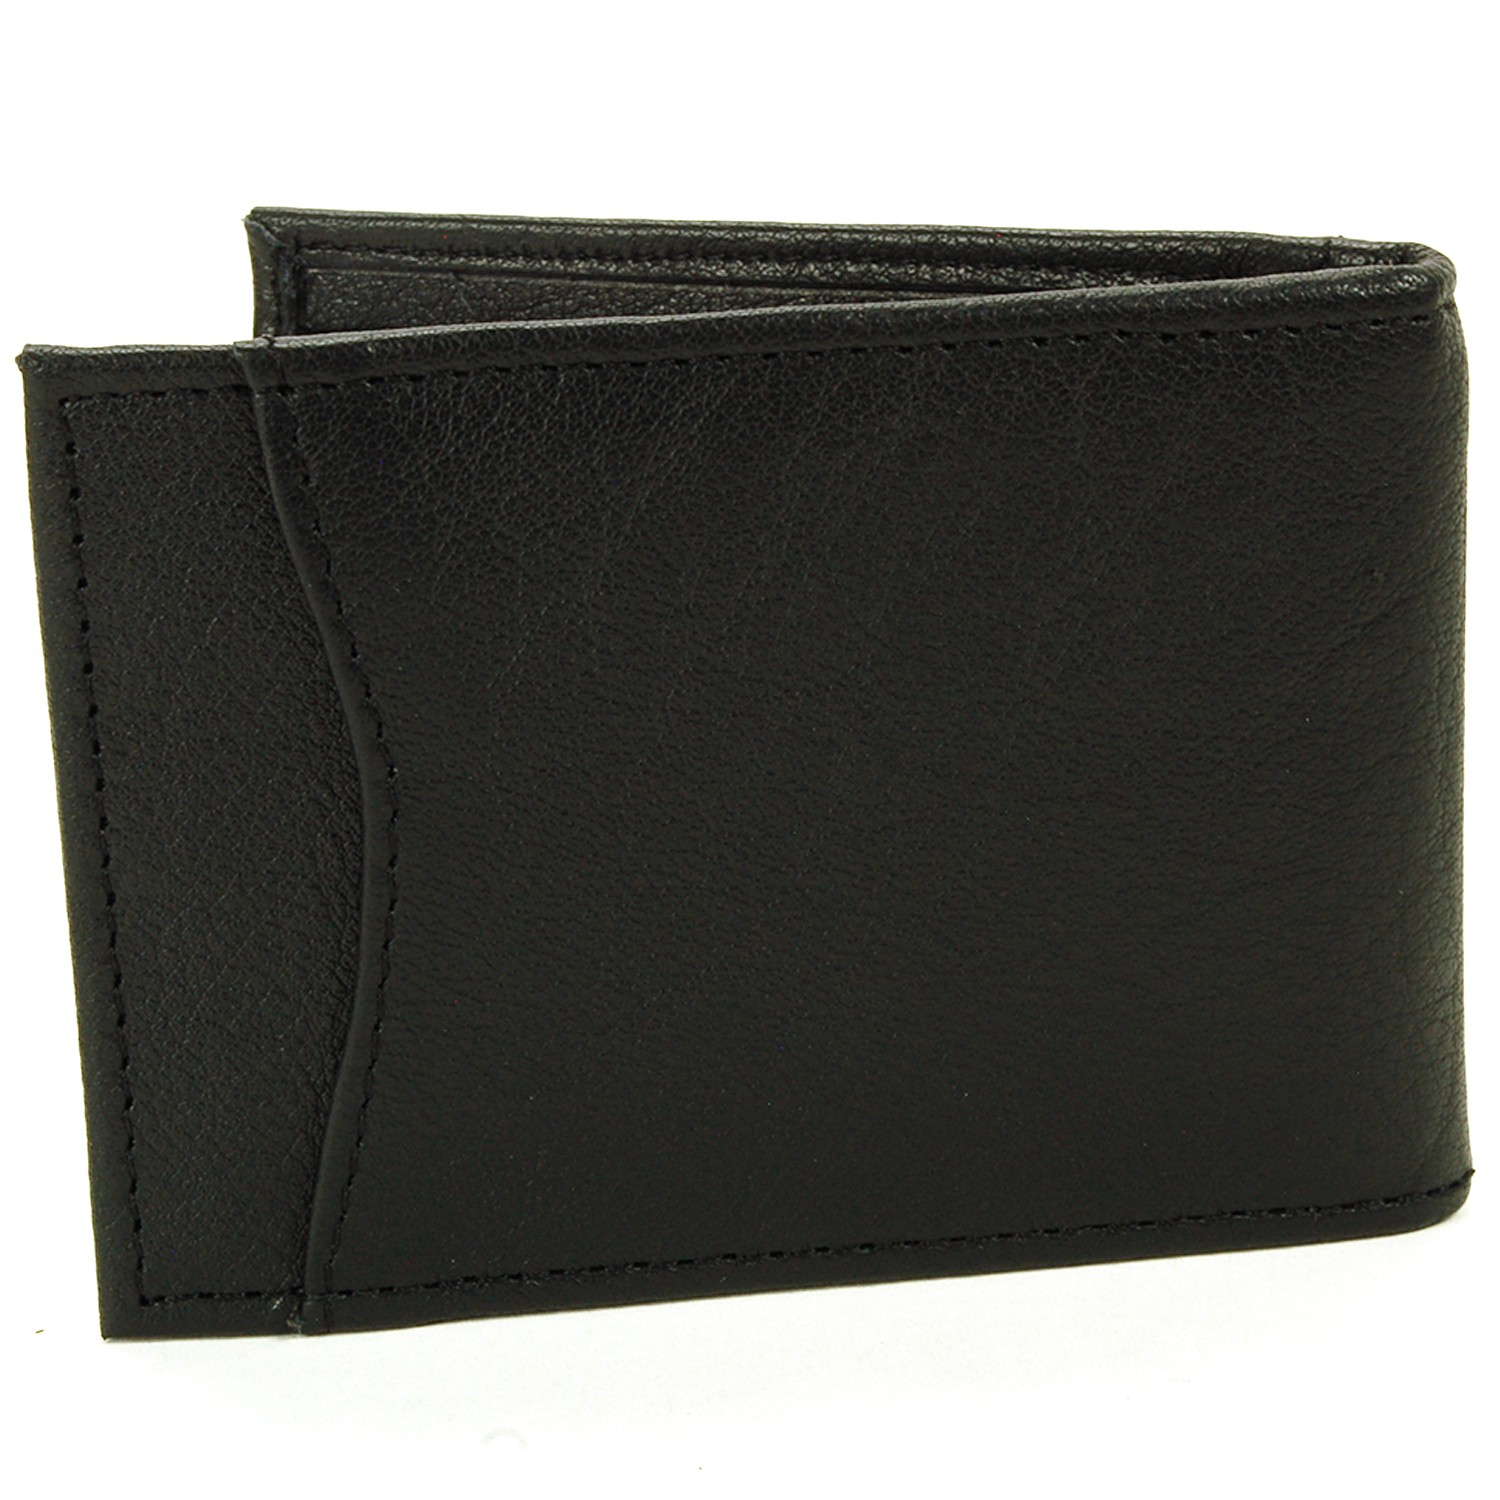 Alpine-Swiss-Mens-Bifold-Money-Clip-Spring-Loaded-Leather-ID-Front-Pocket-Wallet thumbnail 17